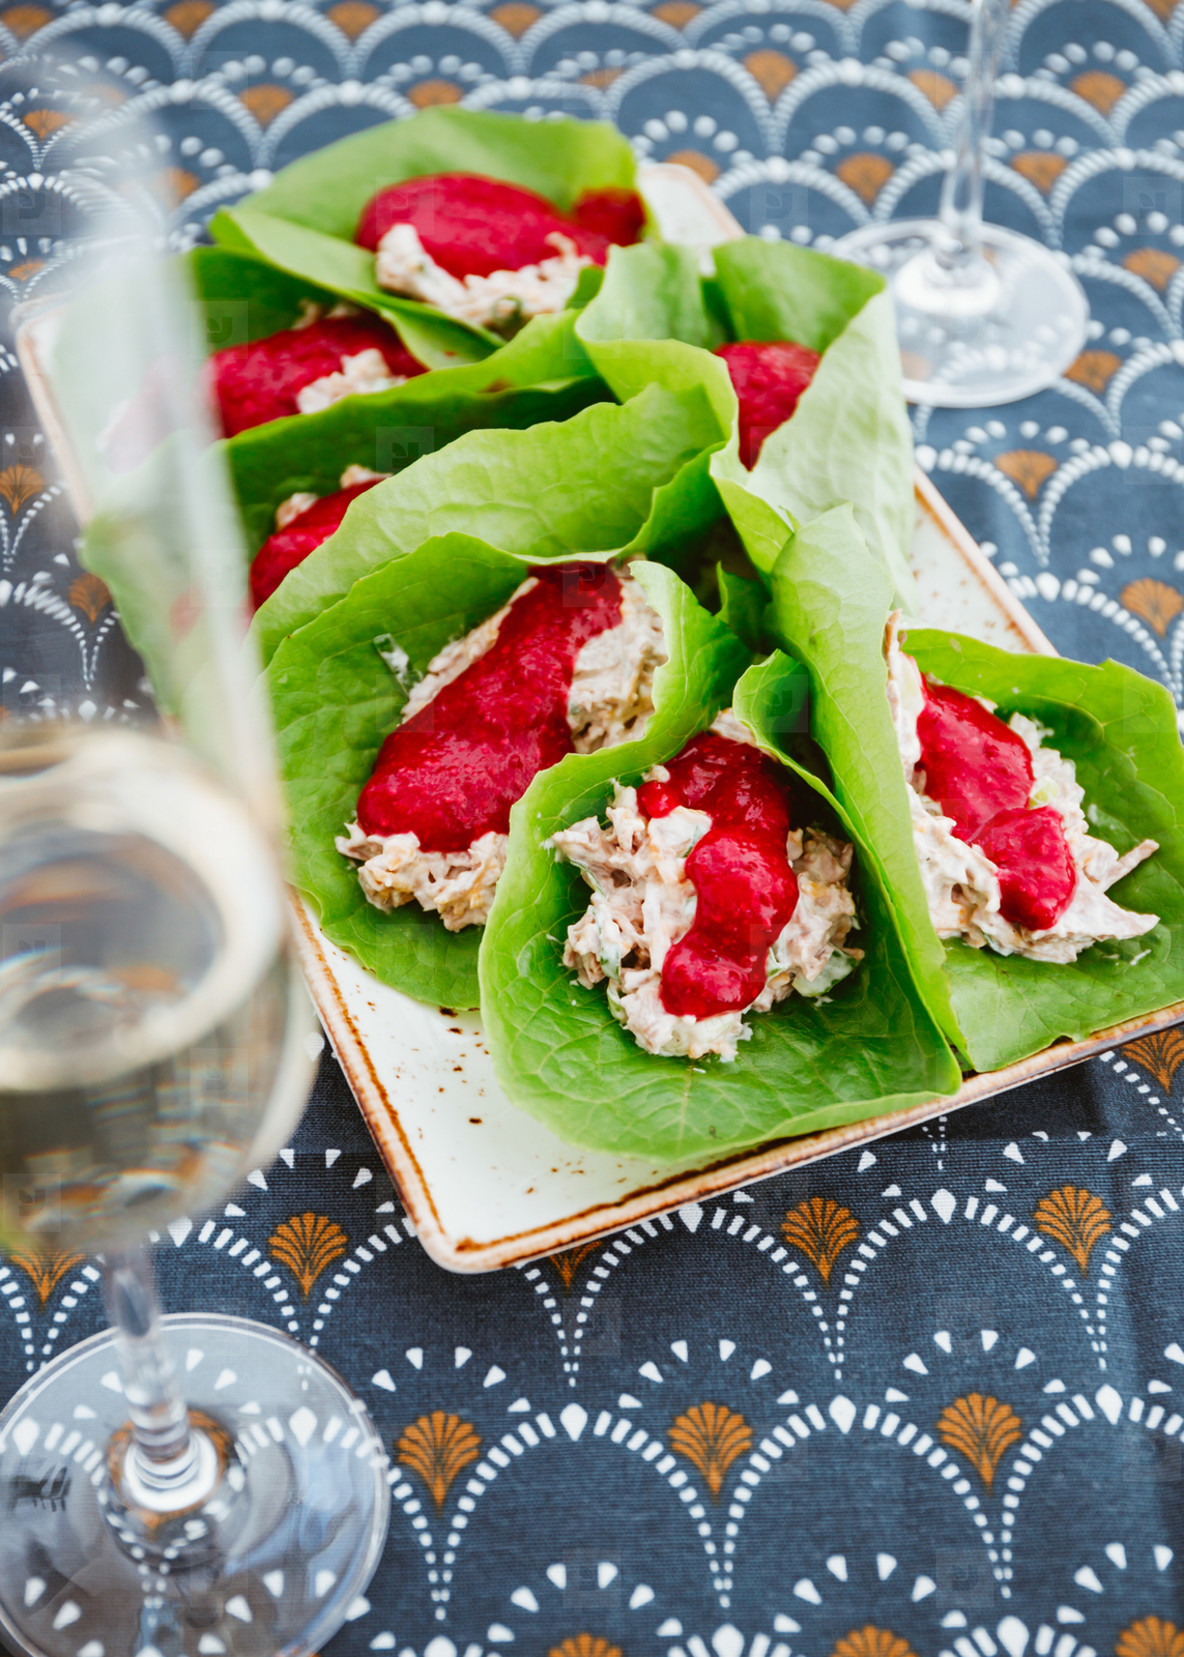 Thanksgiving appetizers are made from turkey leftover in lettuce leaves with cranberry sauce on a festive table